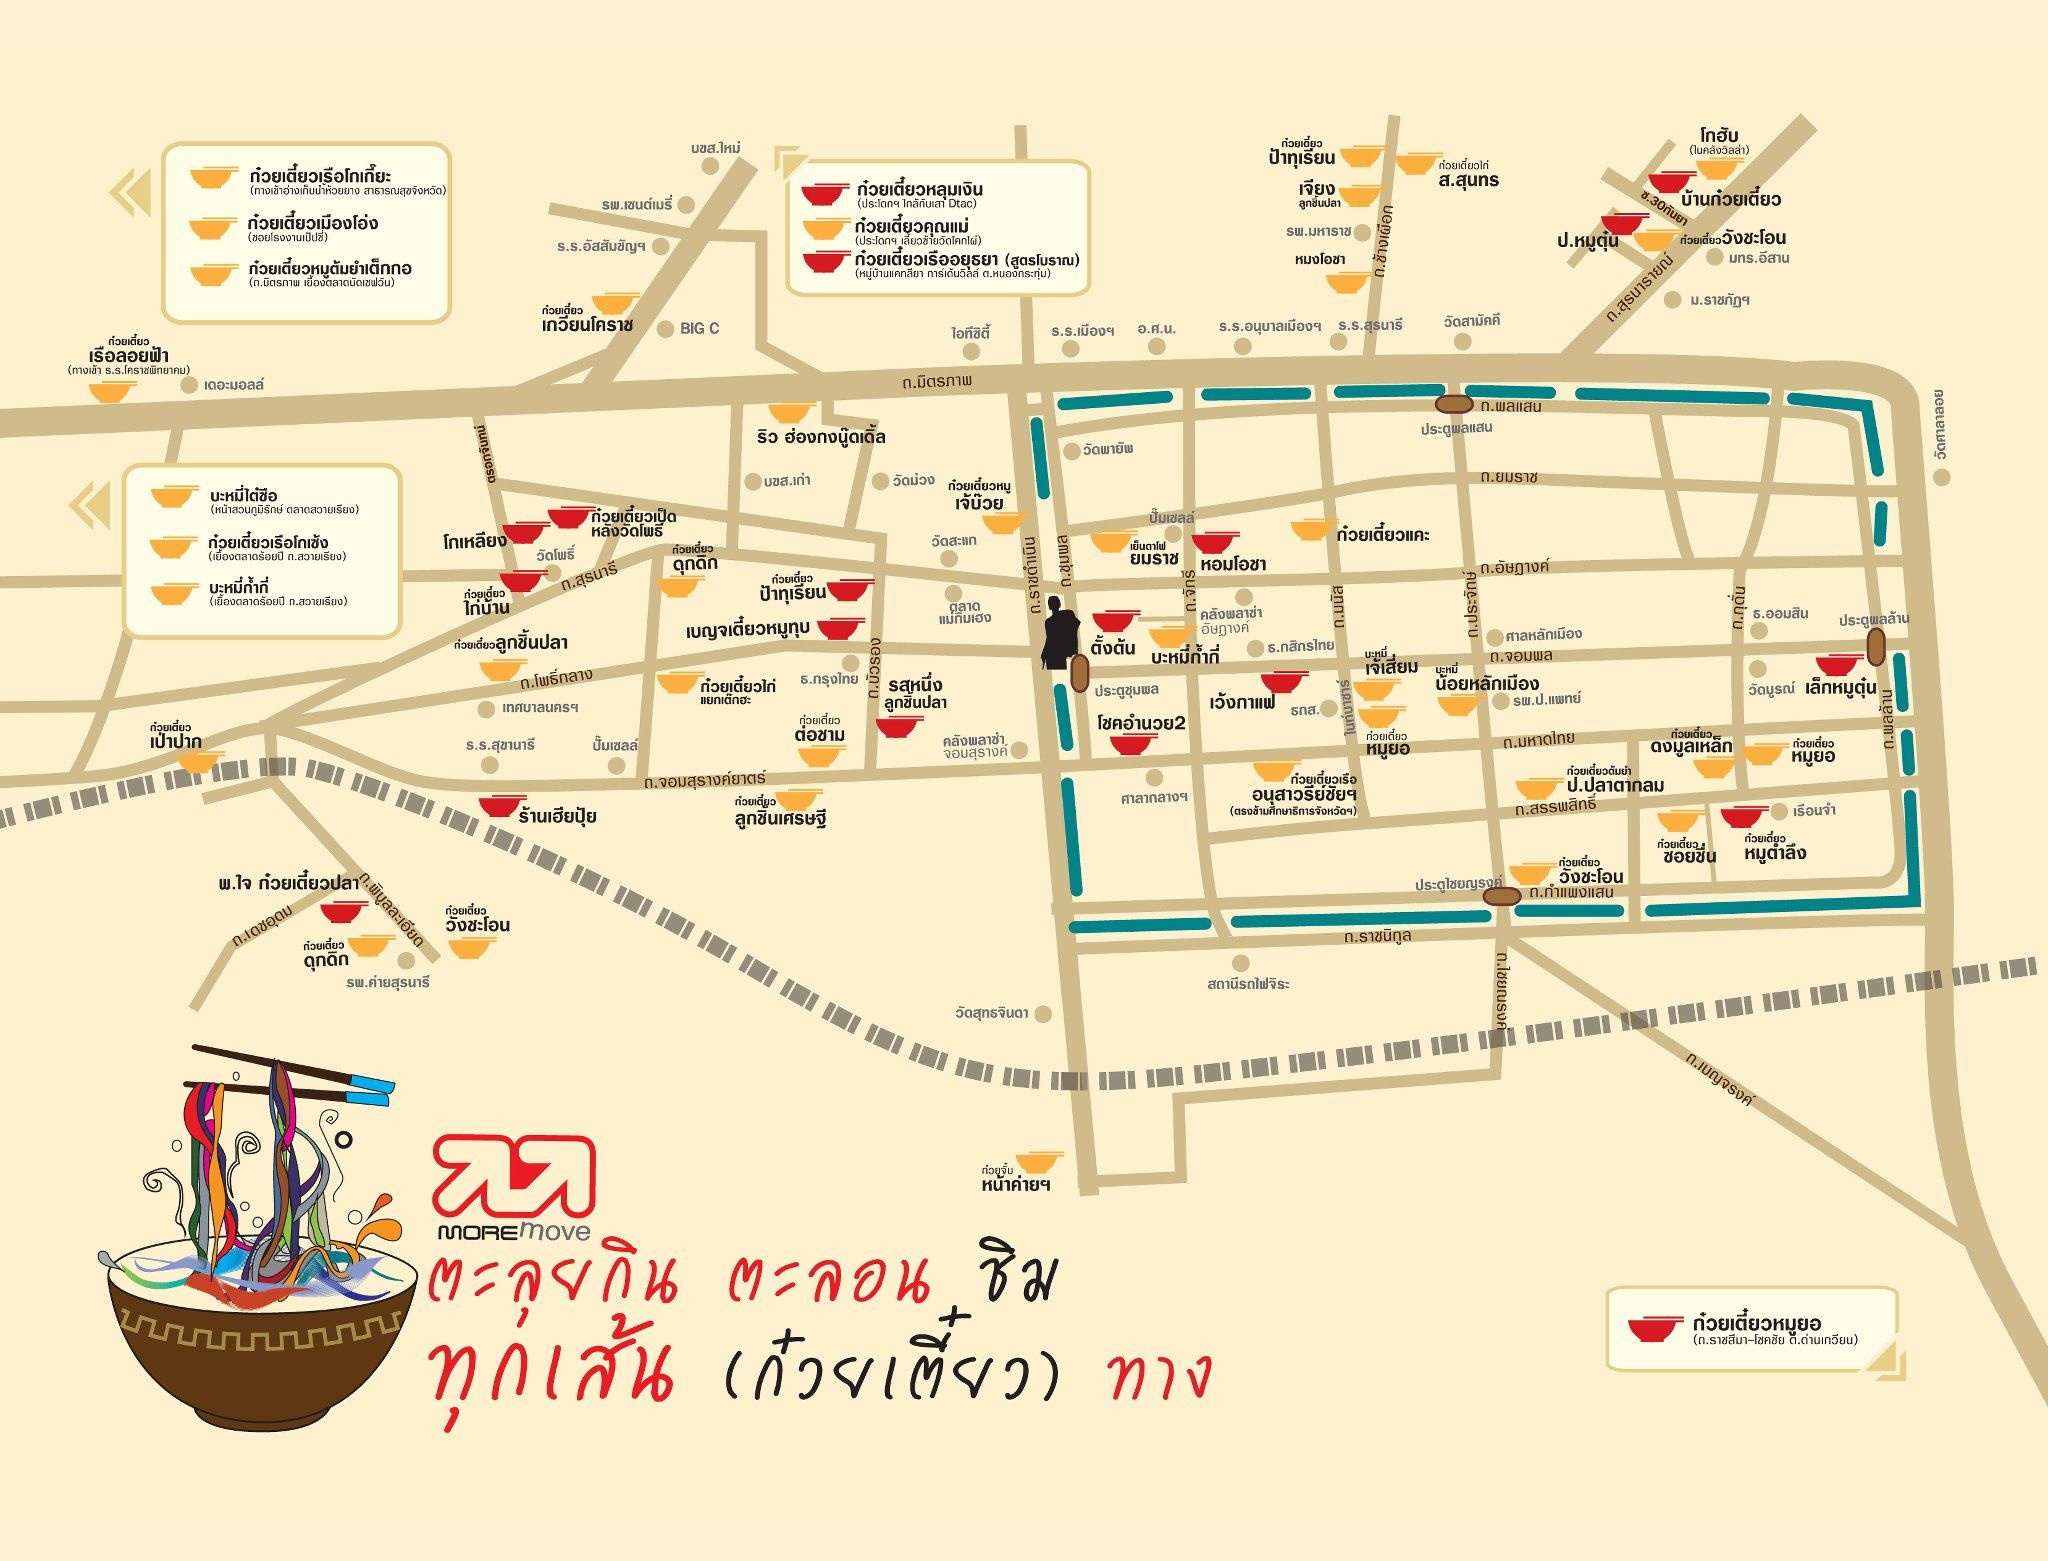 Noodle Shops Map In Korat Thailand By Moremove Design Map